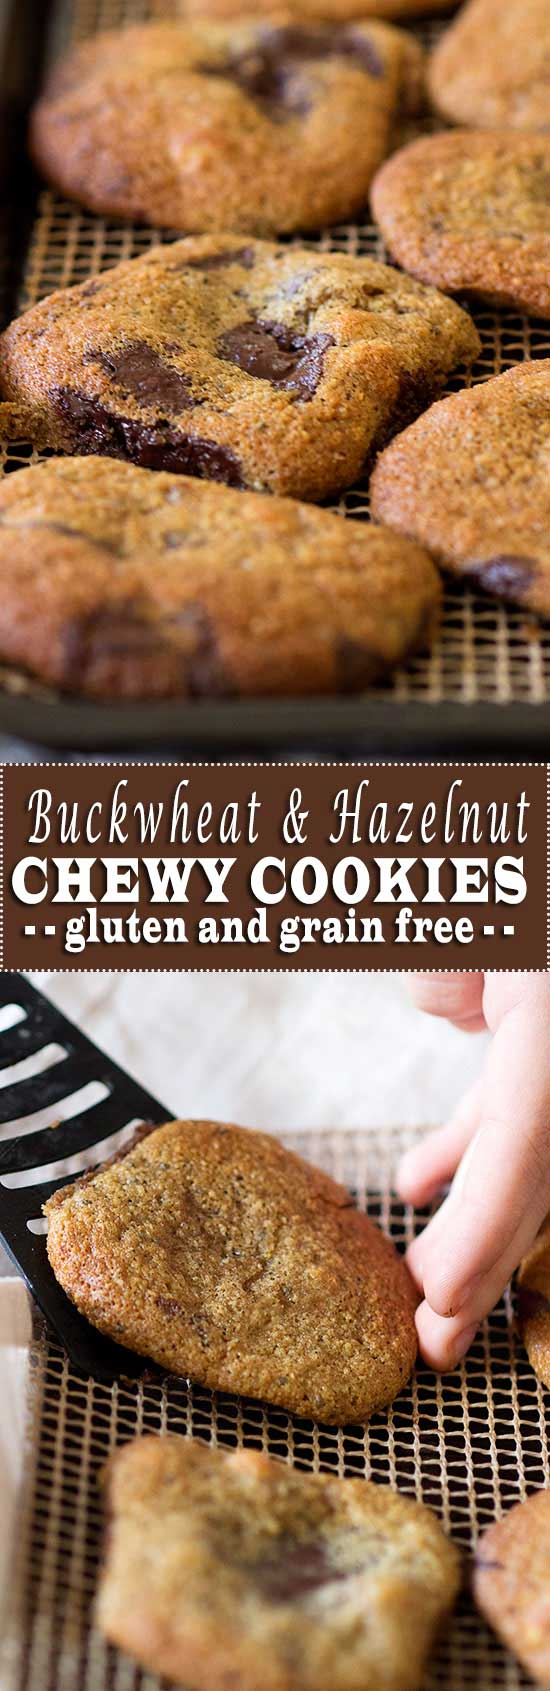 Chewy Buckwheat & Hazelnut Chocolate Chip Cookies from www.sprinkleofgreen.com #glutenfreecookies #buckwheat